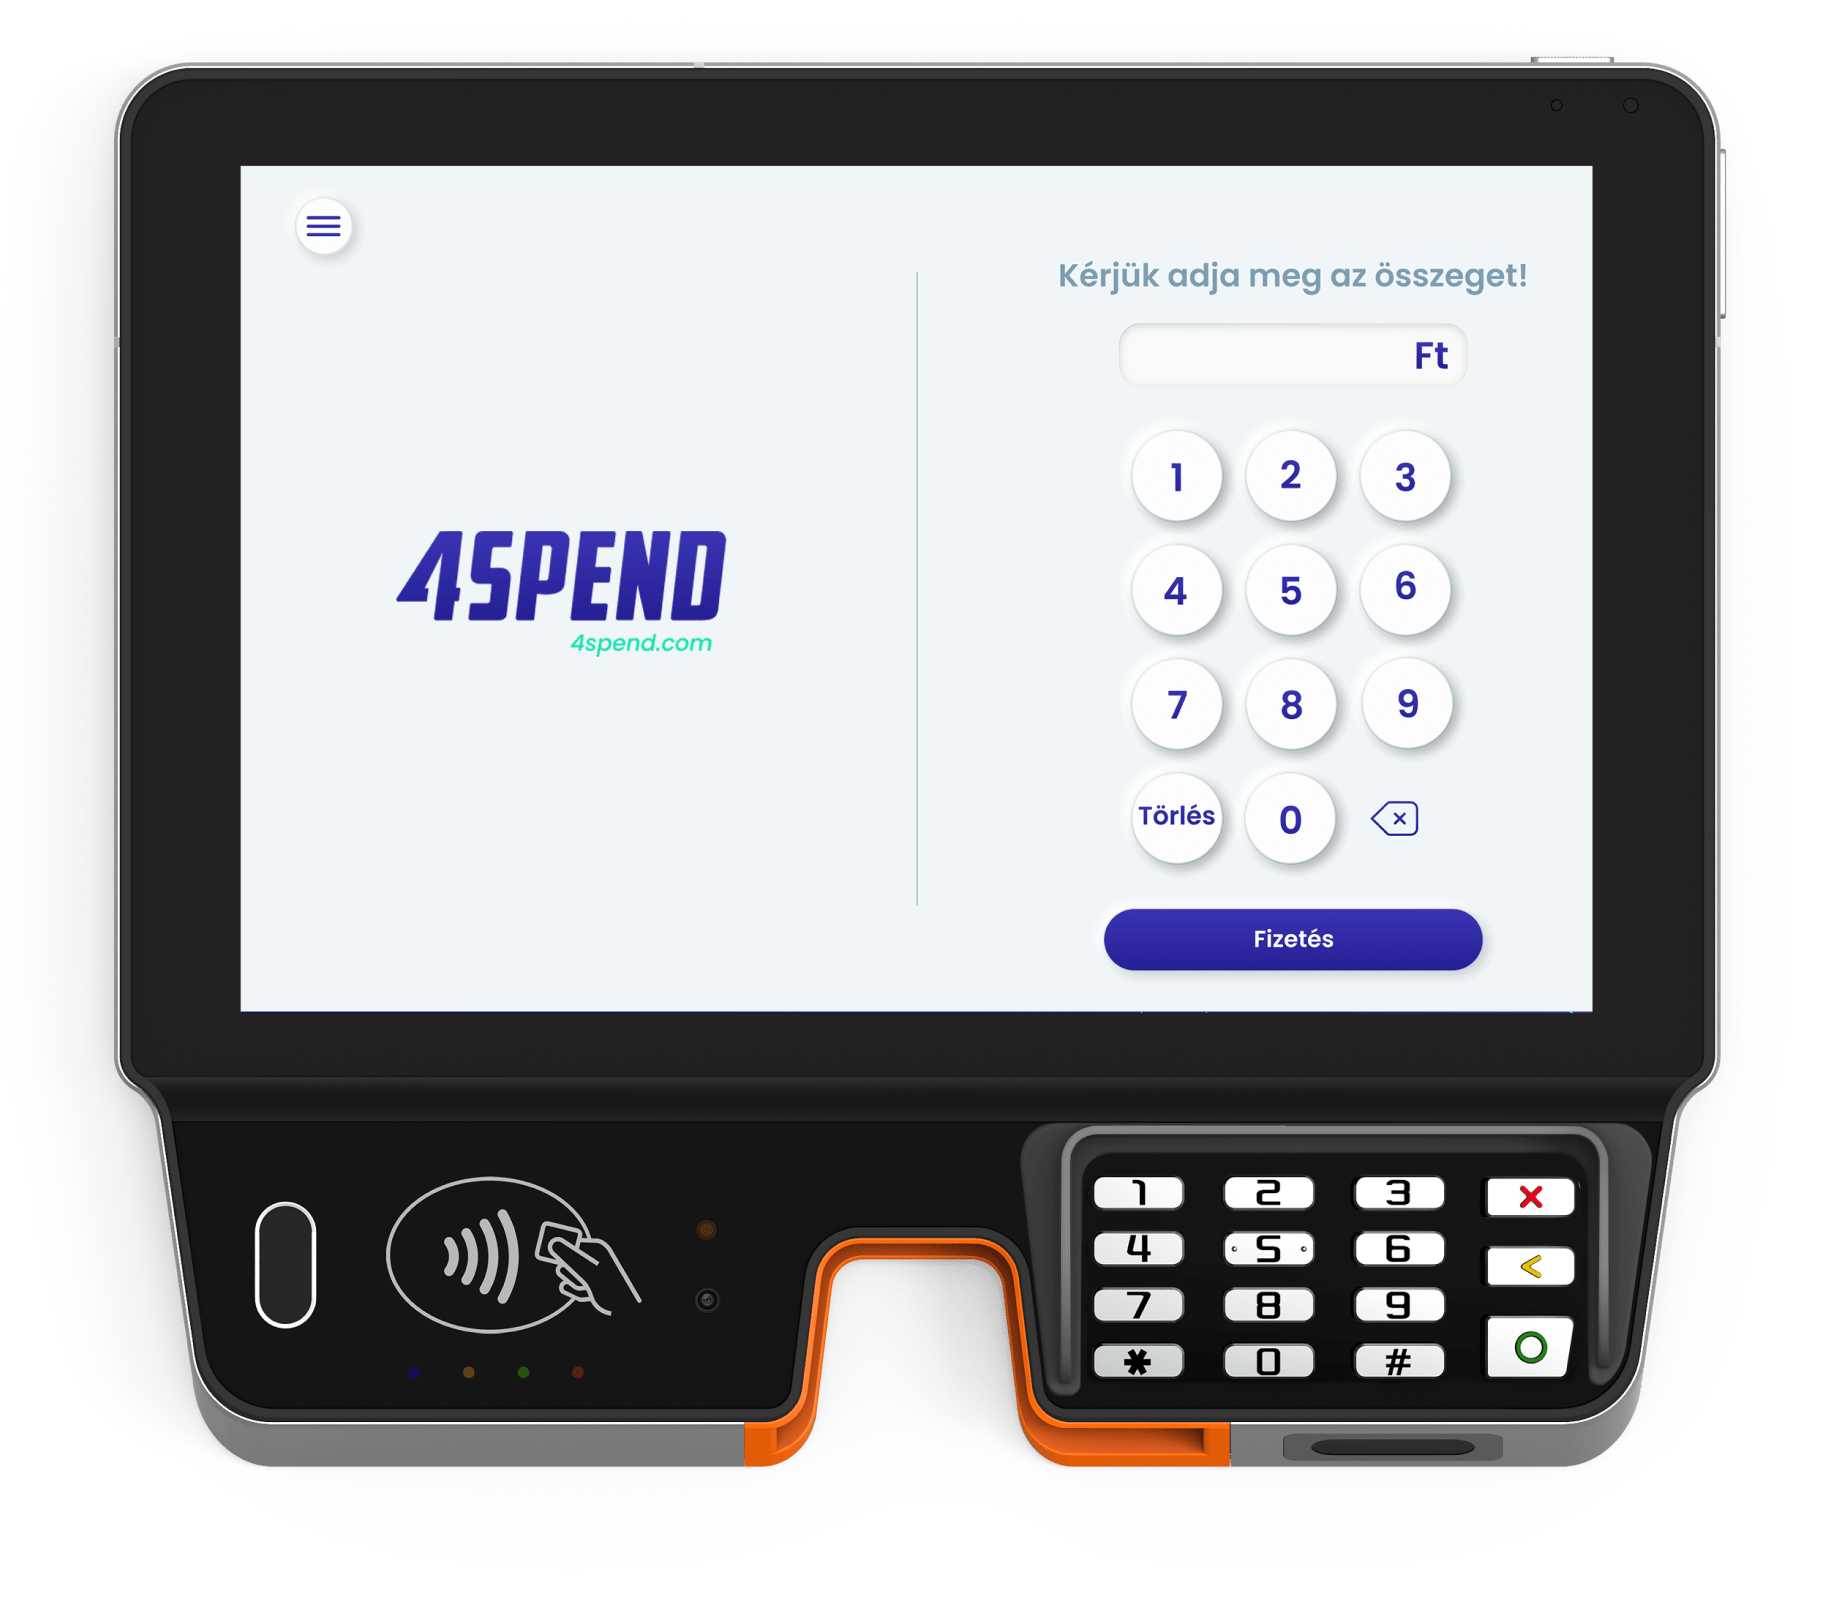 service_page_express_payment_payment_steps_1